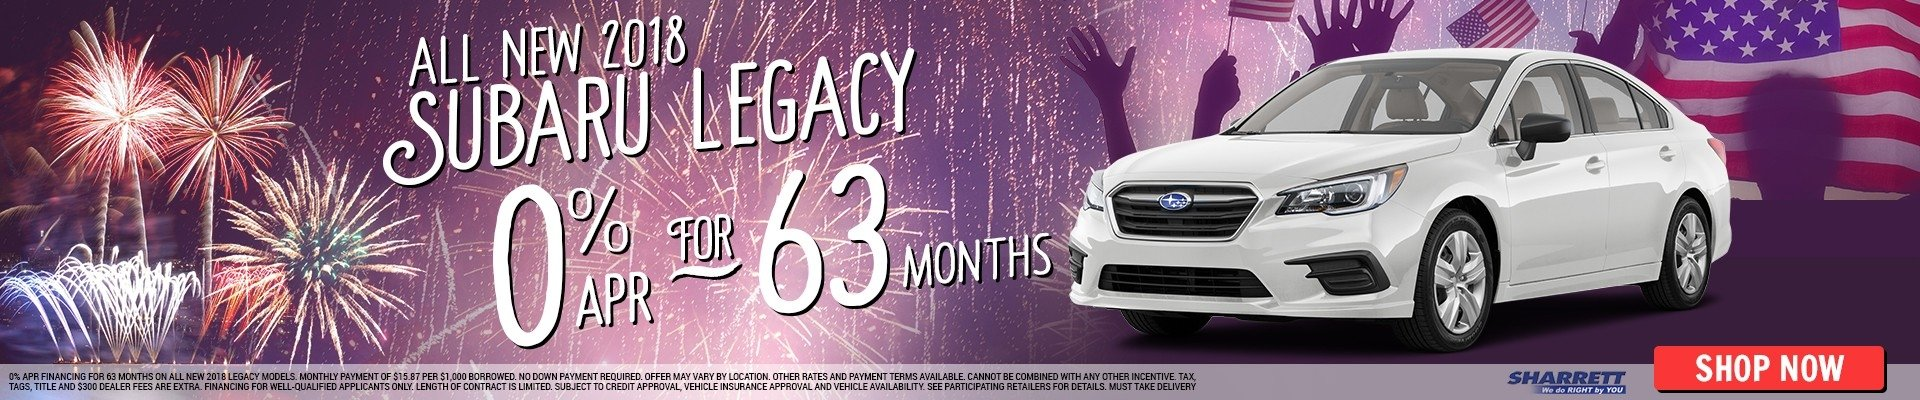 Get 0% APR for 63 months on all new 2018 Subaru Legacy models